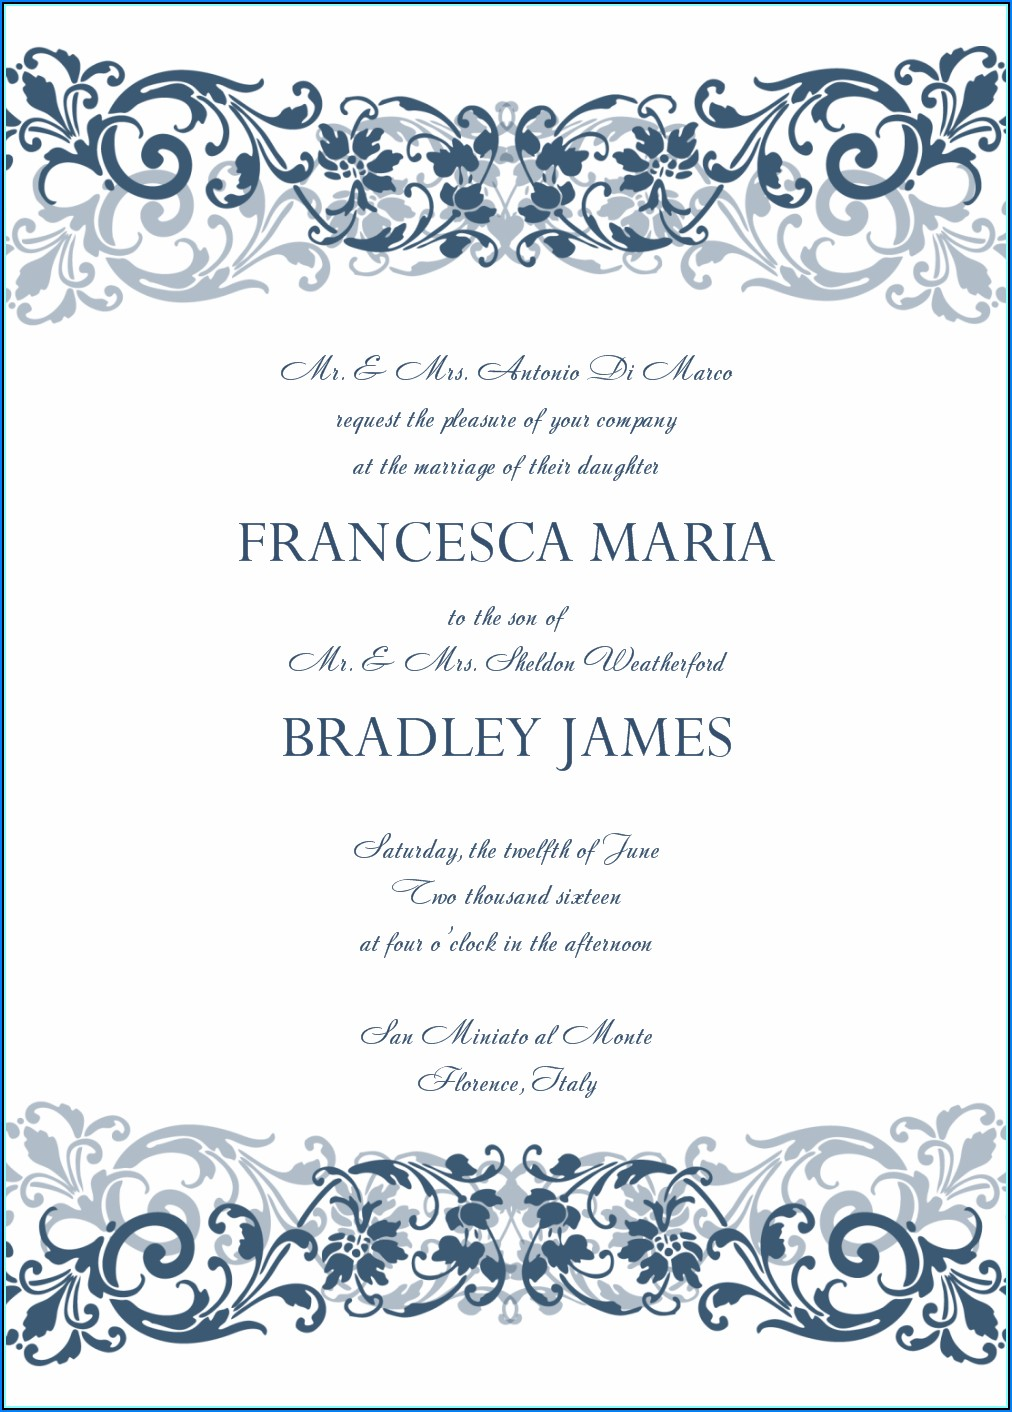 Free Royal Blue Wedding Invitation Templates For Word